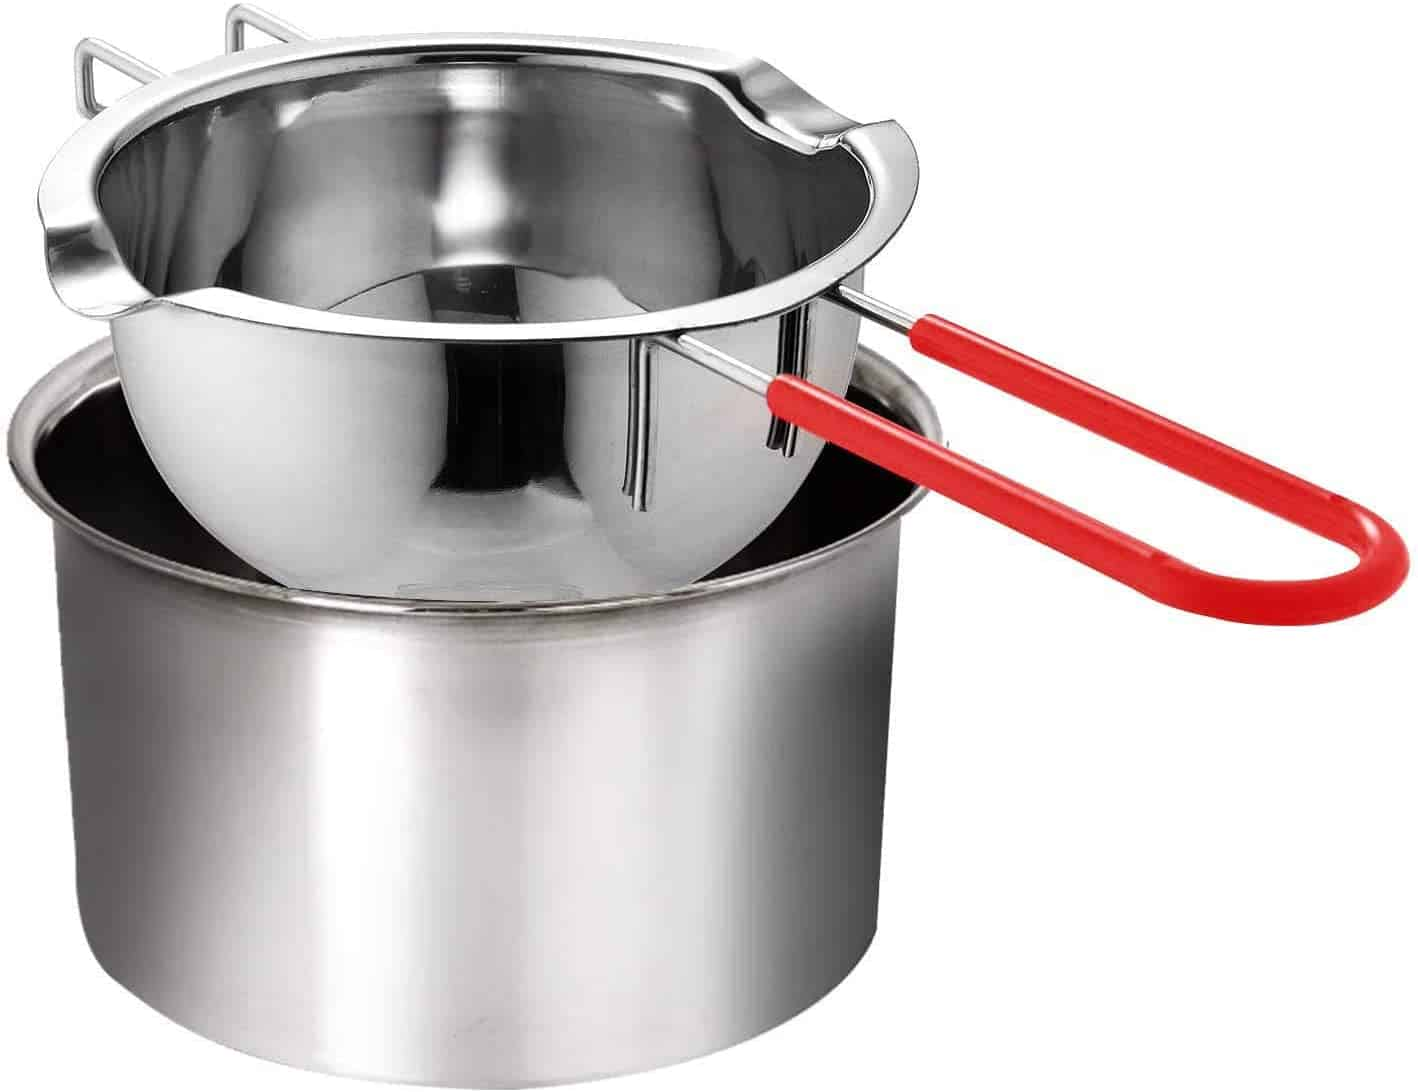 Double Boiler for Chocolate melts